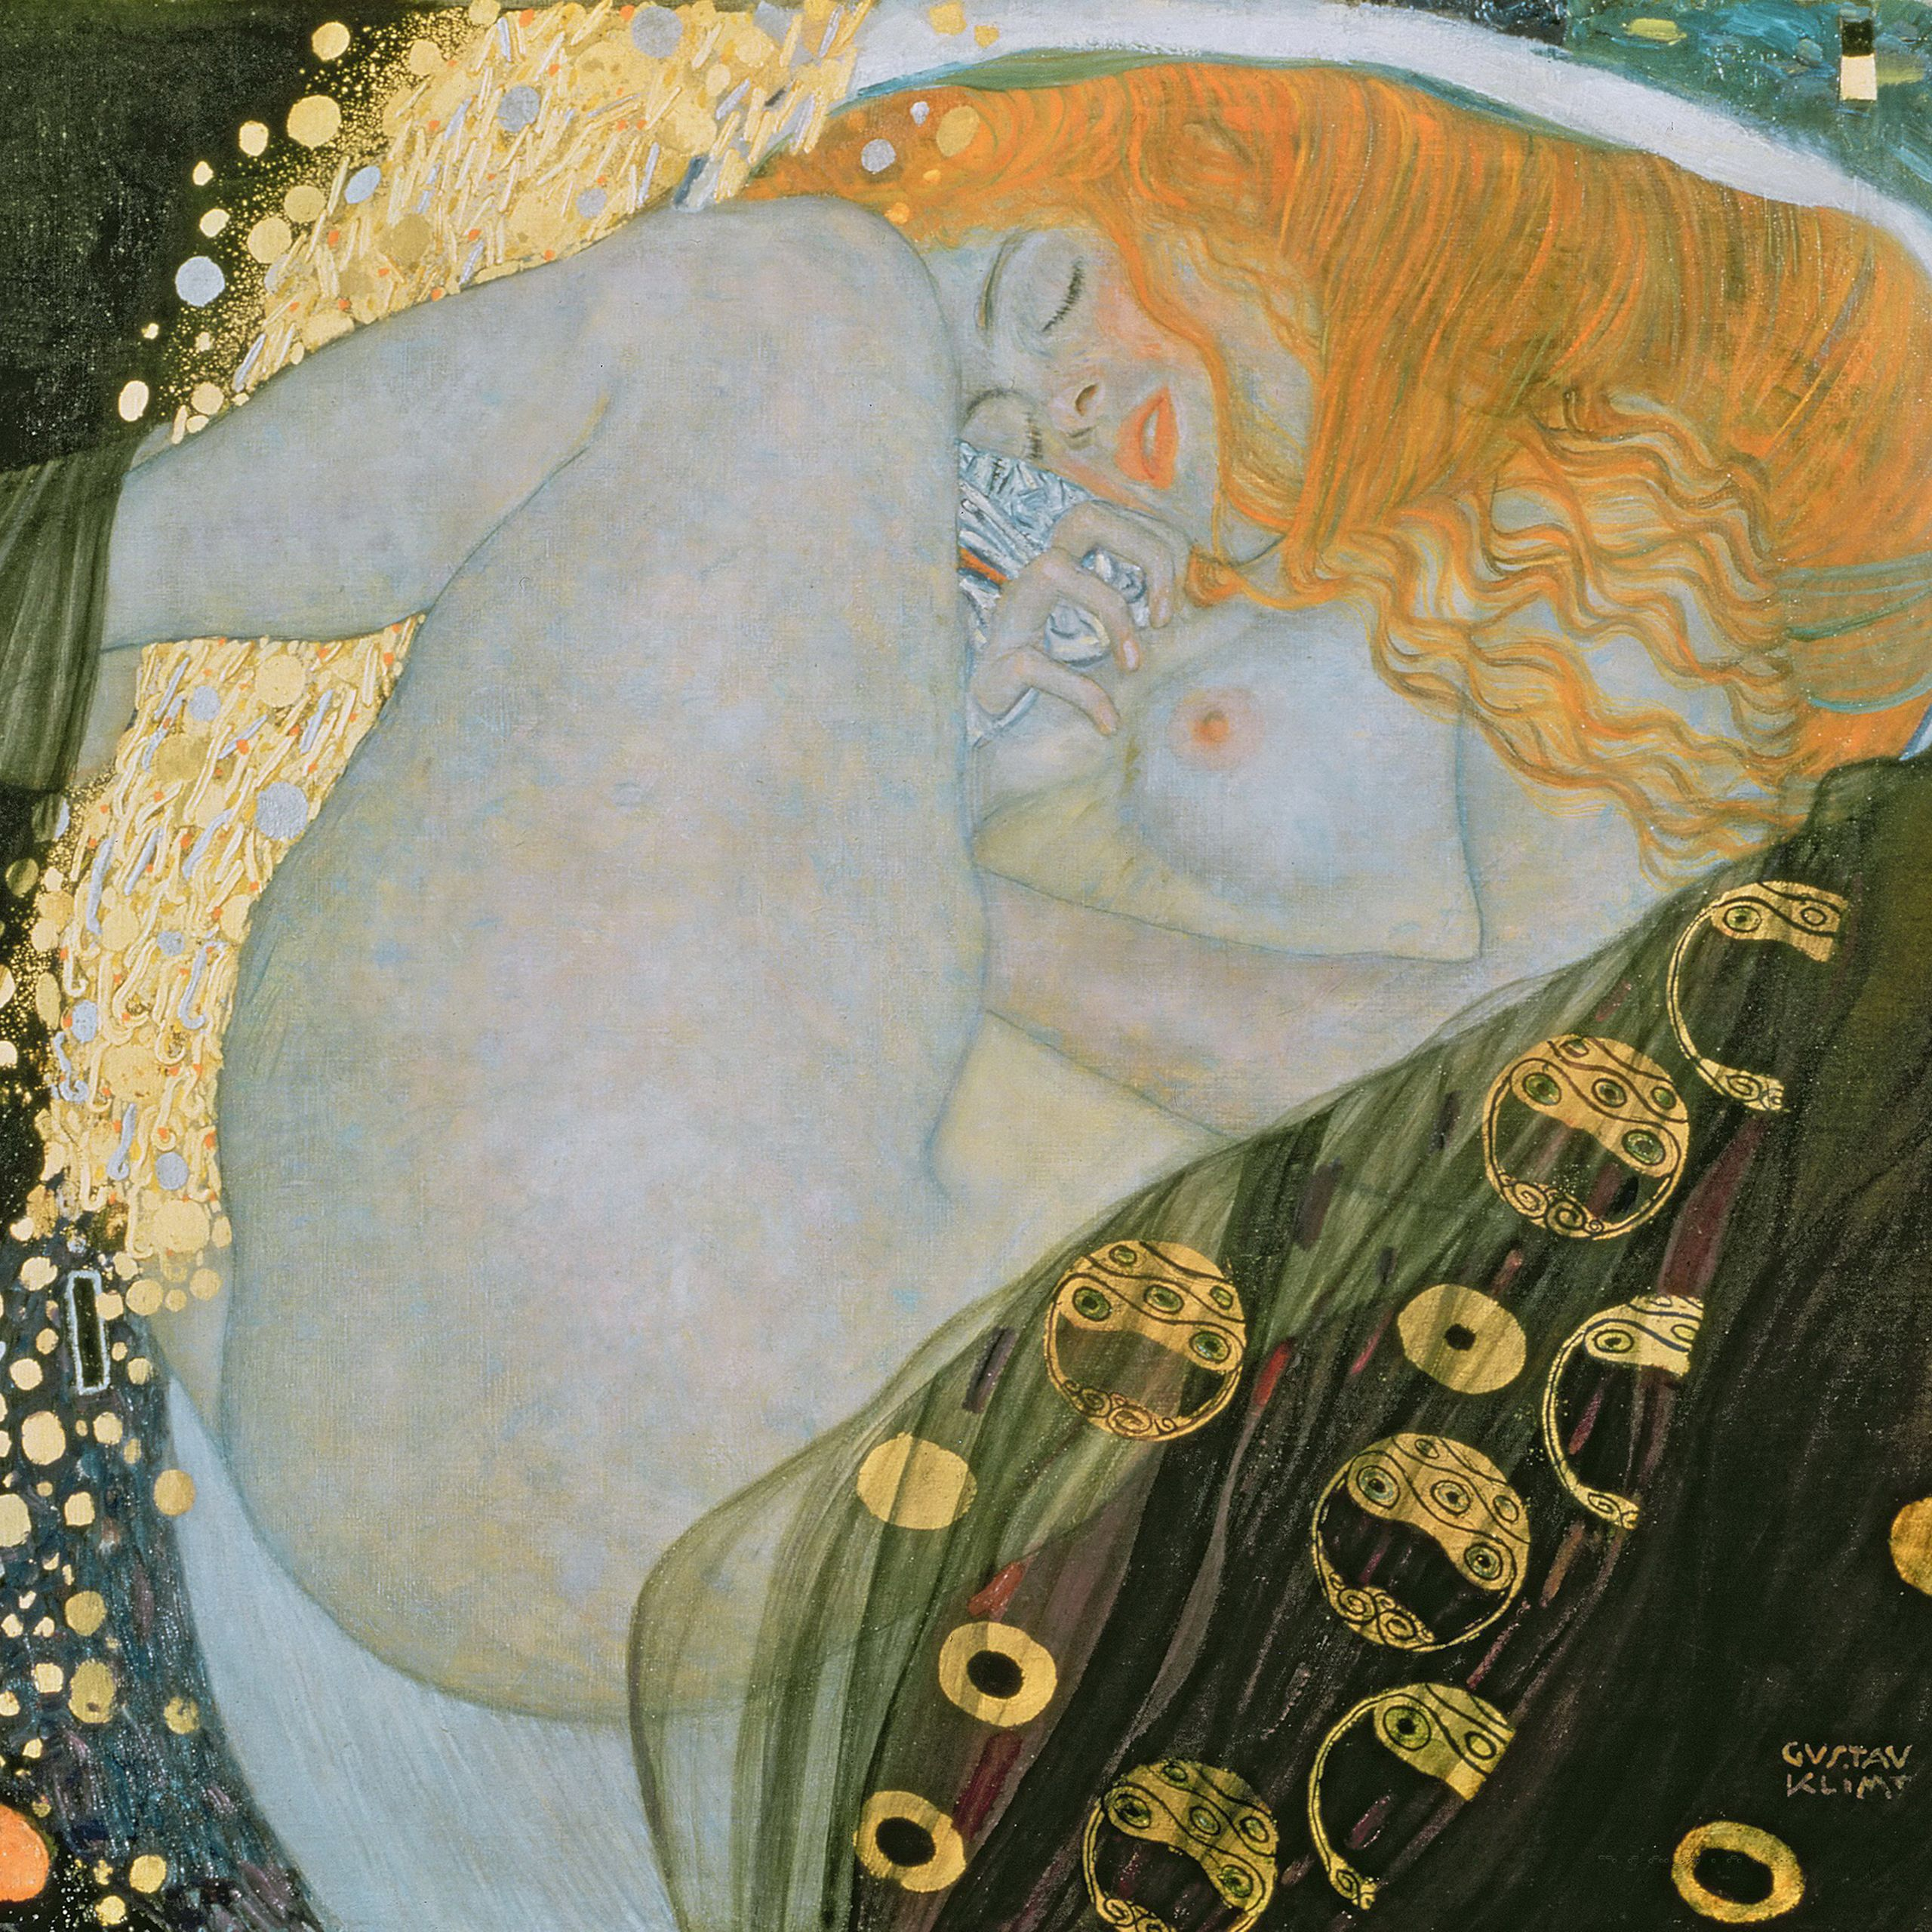 <p>A virtuosic fusion of bright gold and luxurious red pigment, Klimt's <em>Danae</em> is one of the most beautiful paintings from the Viennese Symbolist movement.  Portraying the classical princess as she is visited by Zeus as a shower of gold, <em>Danae</em> is as sensuous as a work on canvas can get.</p>